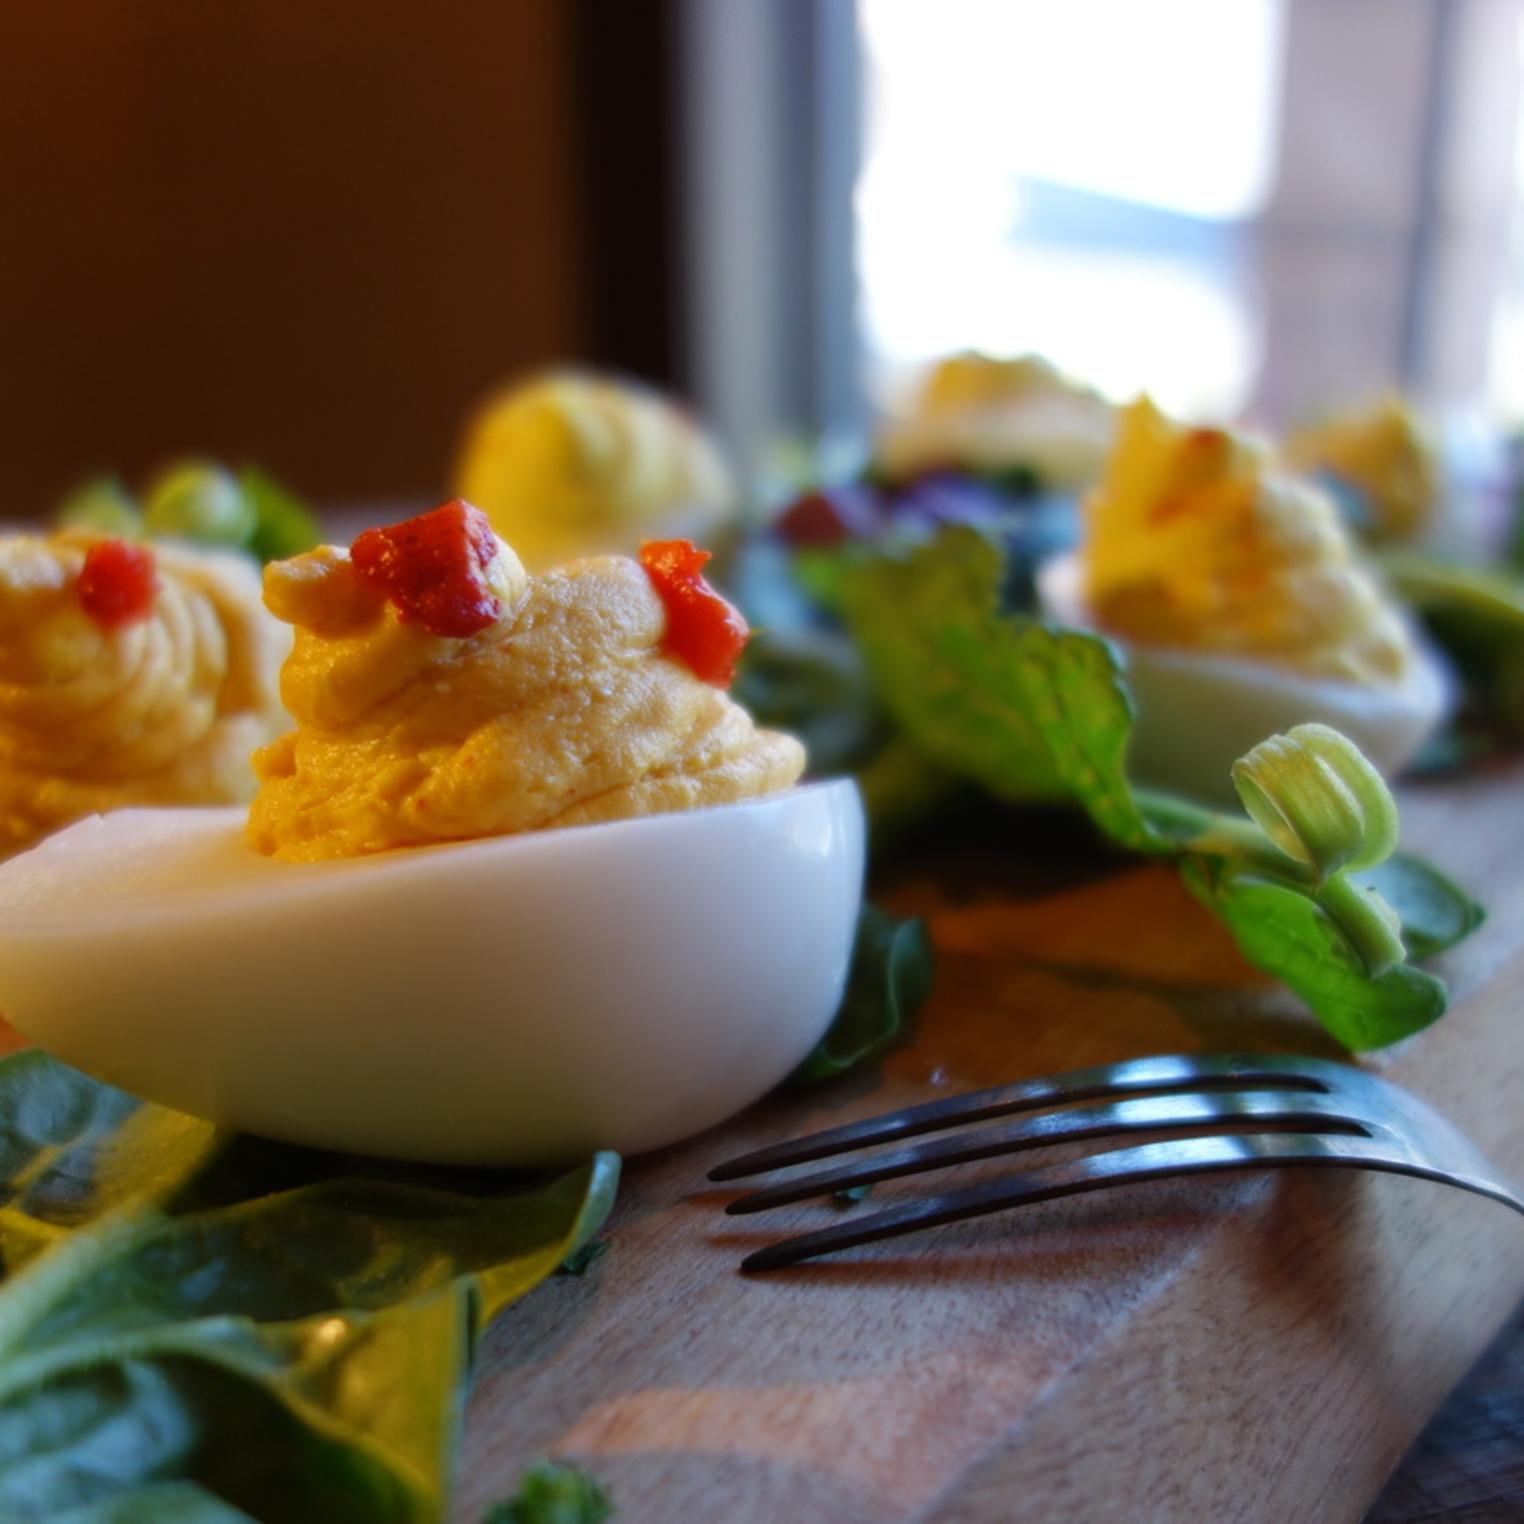 Nest of three Deviled Duck Eggs.